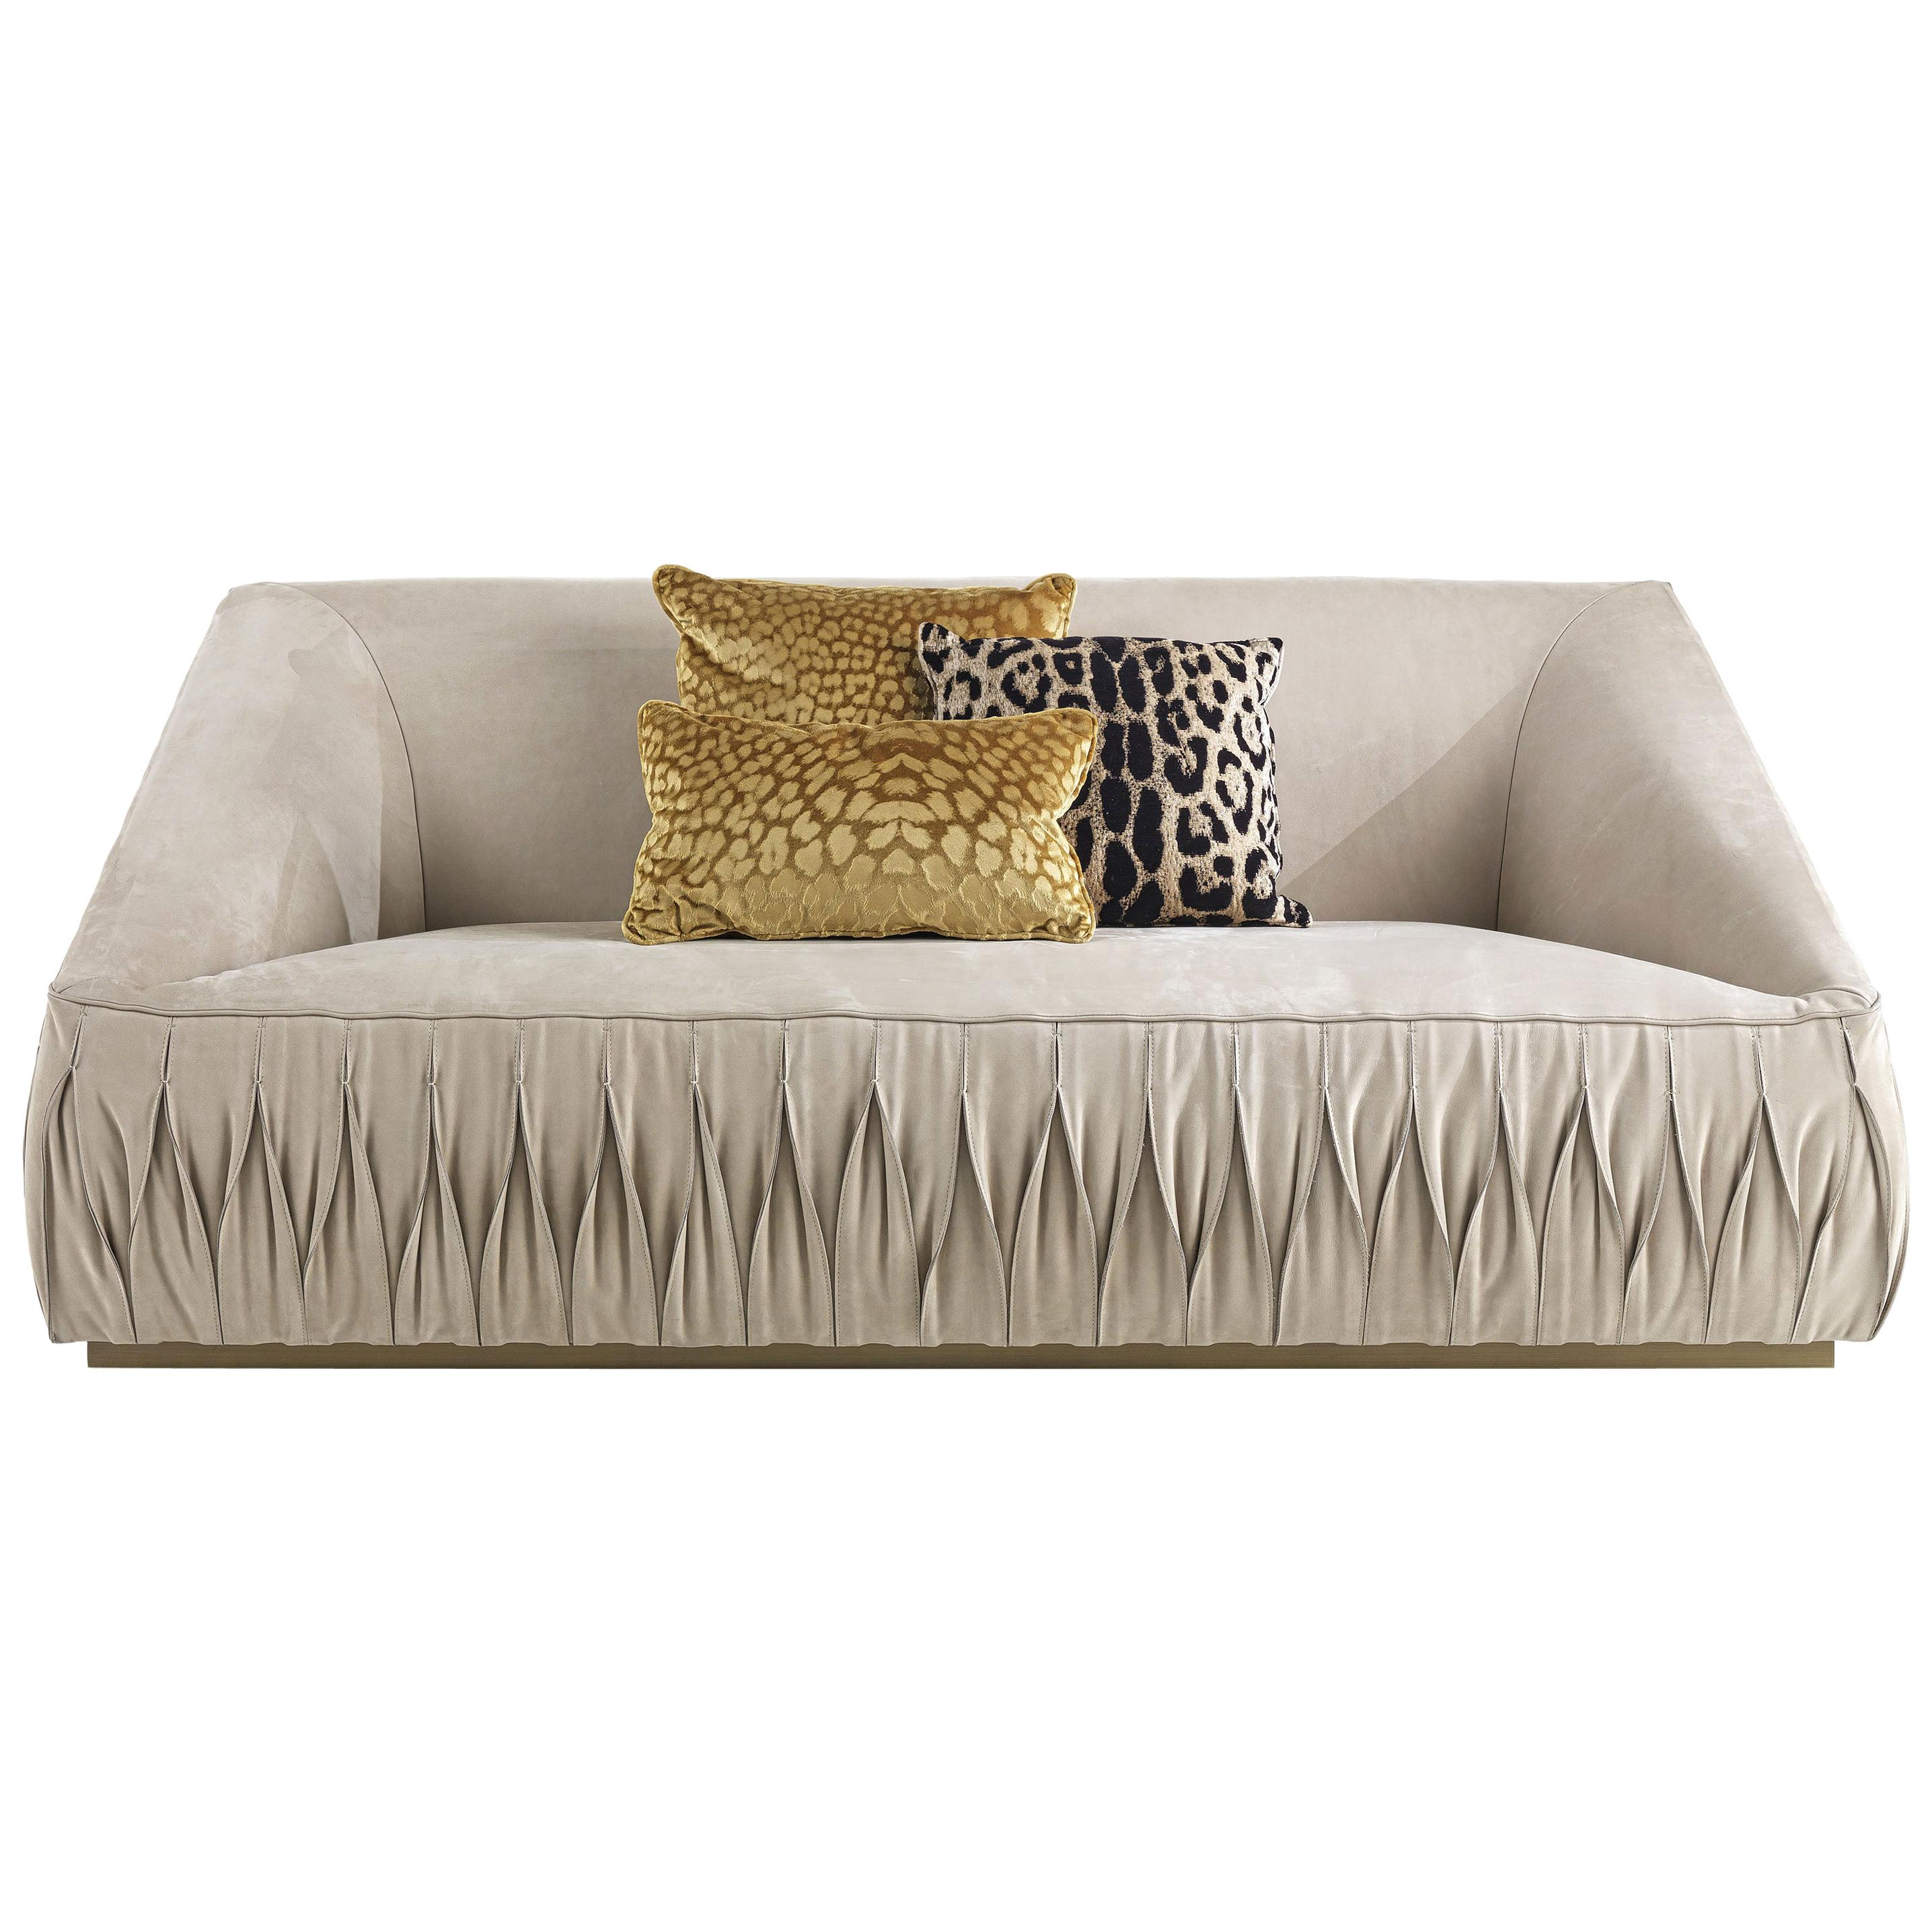 Nest 2-Seater Sofa in Leather by Roberto Cavalli Home Interiors